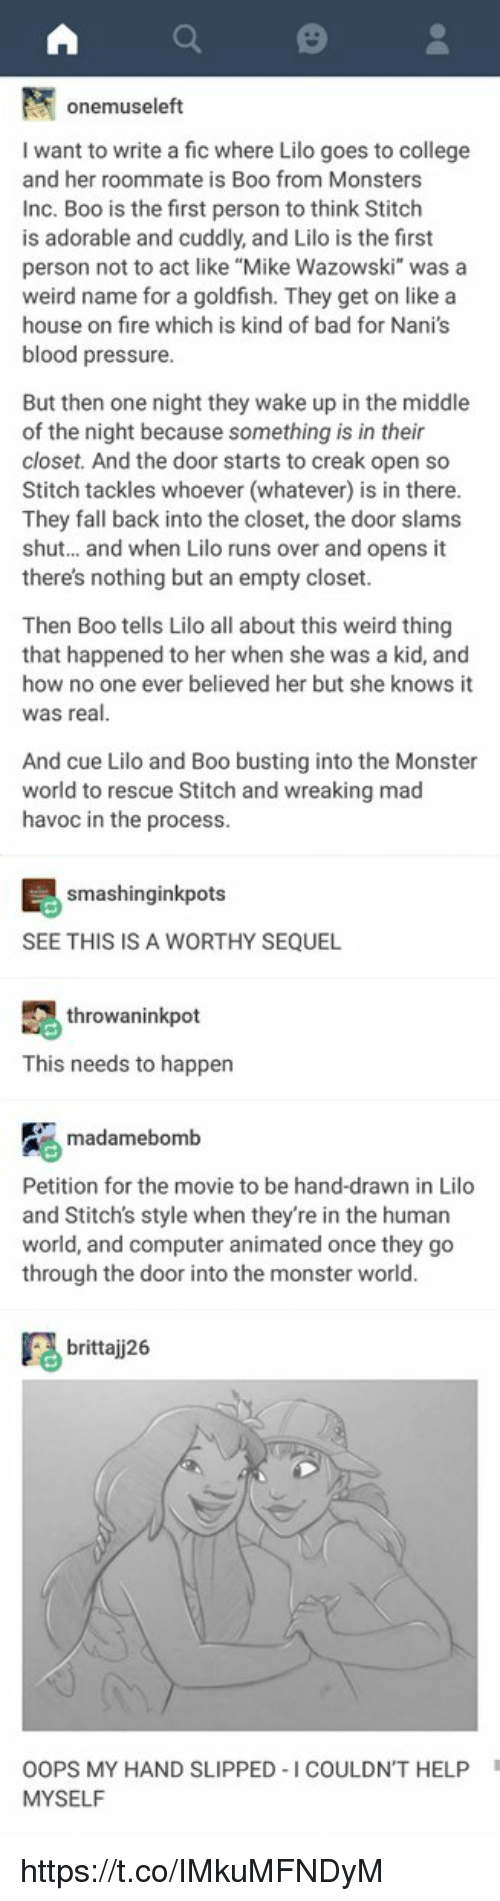 "Bad, Boo, and College: onemuseleft  I want to write a fic where Lilo goes to college  and her roommate is Boo from Monsters  Inc. Boo is the first person to think Stitch  is adorable and cuddly, and Lilo is the first  person not to act like ""Mike Wazowski"" was a  weird name for a goldfish. They get on like a  house on fire which is kind of bad for Nani's  blood pressure  But then one night they wake up in the middle  of the night because something is in their  closet. And the door starts to creak open so  Stitch tackles whoever (whatever) is in there  They fall back into the closet, the door slams  shut... and when Lilo runs over and opens it  there's nothing but an empty closet  Then Boo tells Lilo all about this weird thing  that happened to her when she was a kid, and  how no one ever believed her but she knows it  was real  And cue Lilo and Boo busting into the Monster  world to rescue Stitch and wreaking mad  havoc in the process  smashinginkpots  SEE THIS IS A WORTHY SEQUEL  throwaninkpot  This needs to happen  madamebomb  Petition for the movie to be hand-drawn in Lilo  and Stitch's style when they're in the human  world, and computer animated once they go  through the door into the monster world  brittaj26  OOPS MY HAND SLIPPED-I COULDN'T HELP  MYSELF https://t.co/IMkuMFNDyM"